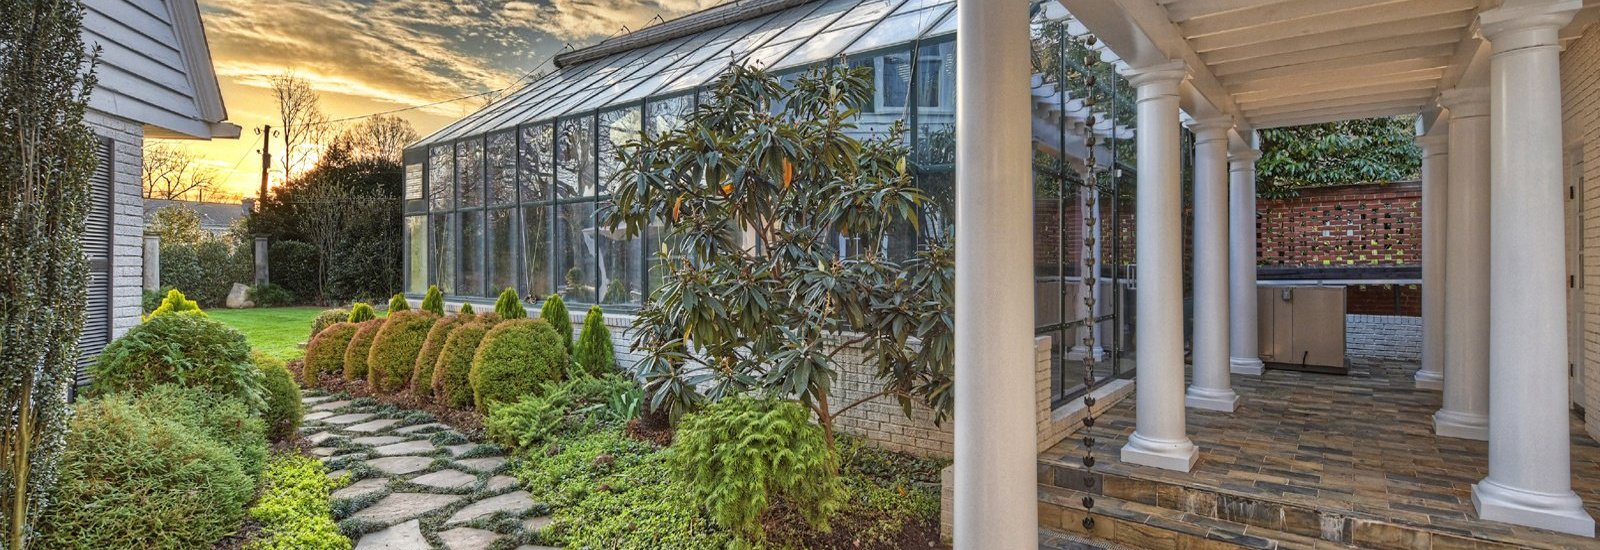 6 Homes with Glorious Greenhouses - Christie's International ... on beautiful water plants, beautiful extinct plants, beautiful birds, beautiful animals, beautiful summertime plants, beautiful shade plants, beautiful flowering plants, beautiful african plants, beautiful colorful plants, beautiful office plants, beautiful nature plants, beautiful indoor plants, beautiful outdoor plants, beautiful succulent plants, beautiful herbs, outside landscaping plants, beautiful orchids, beautiful wild plants, beautiful home,